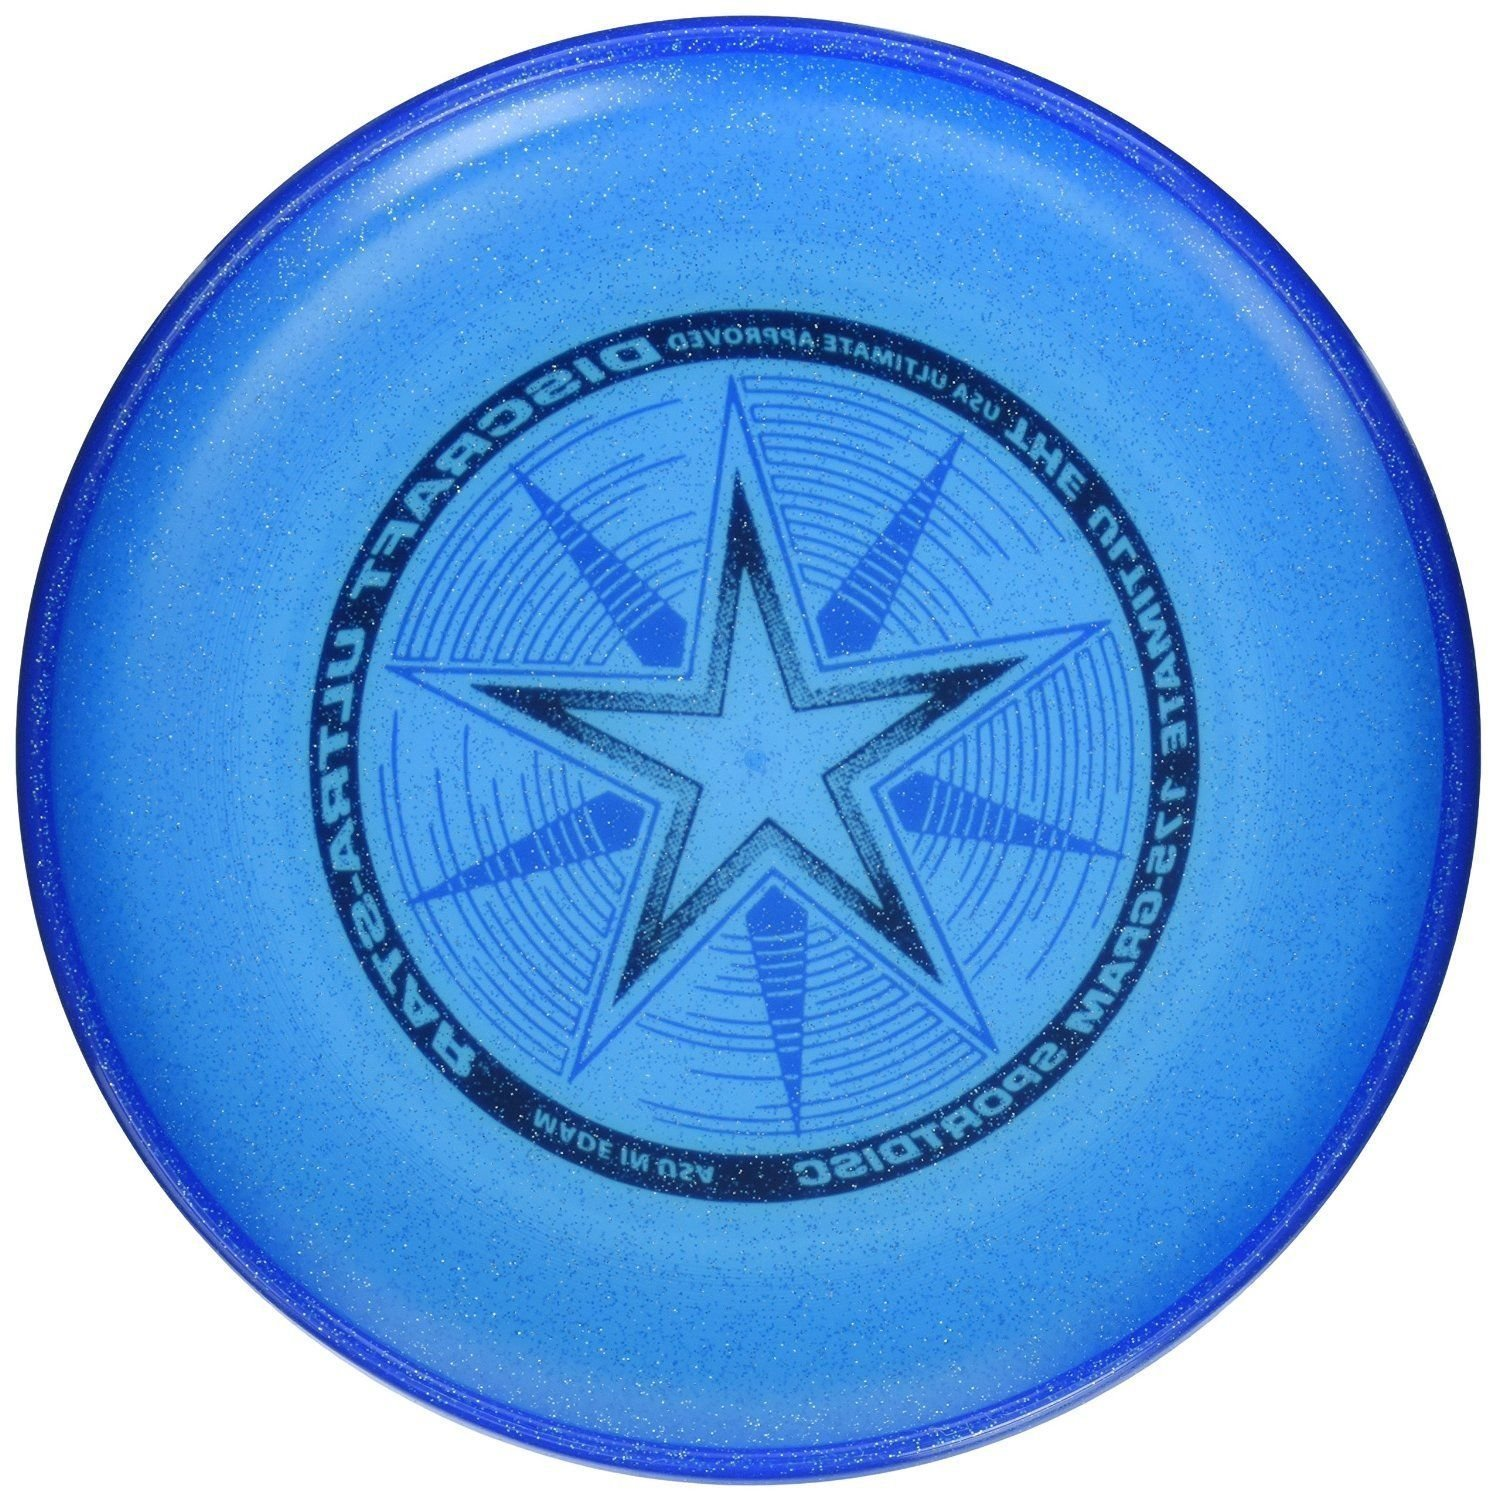 Discraft 175 gram Ultra Star Sport Disc, Blue Sparkle